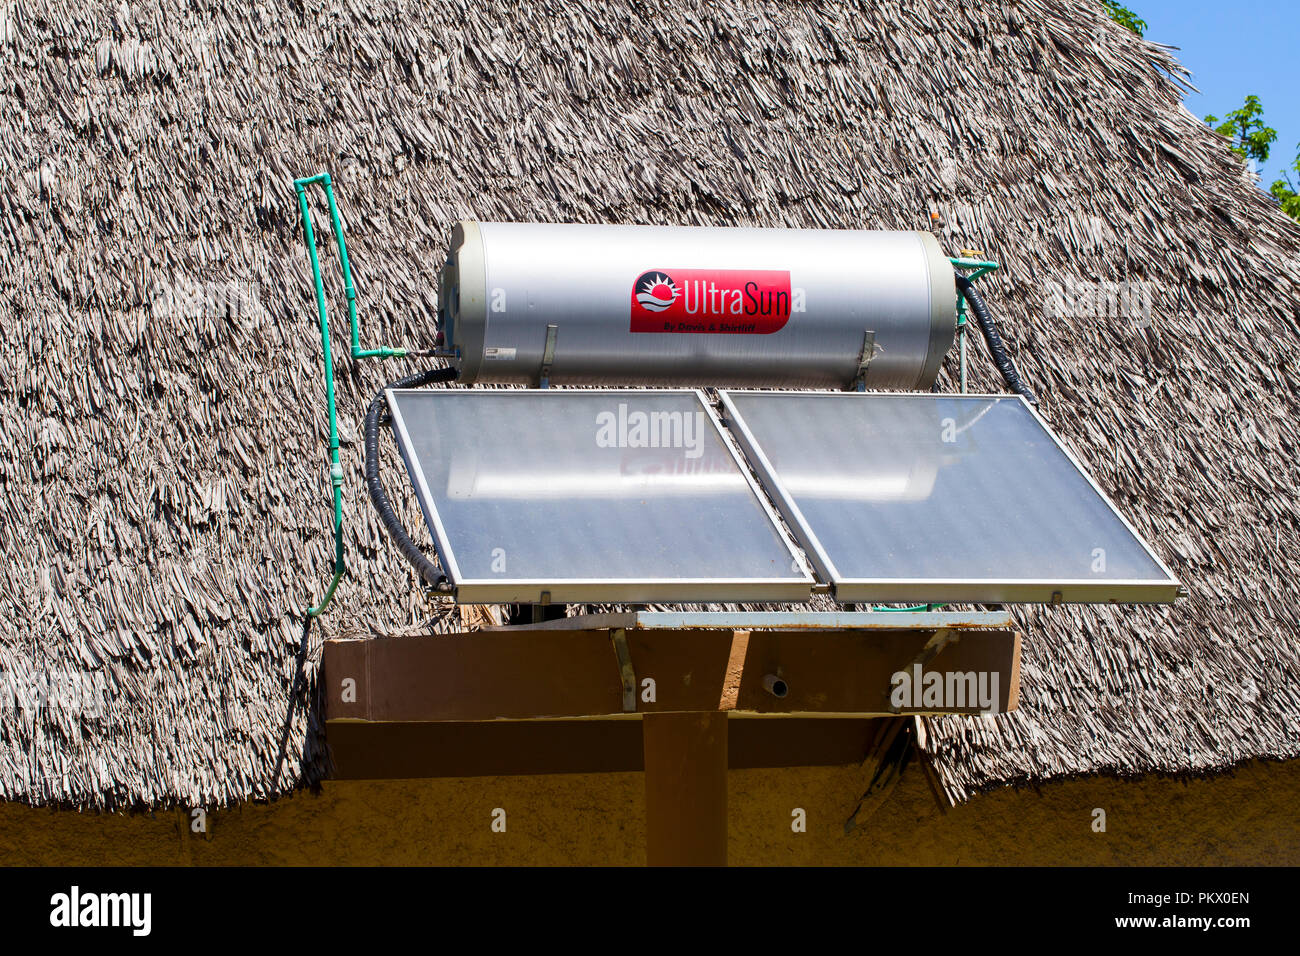 GALU - KINONDO BEACH, KENYA - FEBRUARY 26, 2018: Systems for heating water from sunlight ( sun collectors) on roofs of hotel Neptune Paradise Beach Re - Stock Image